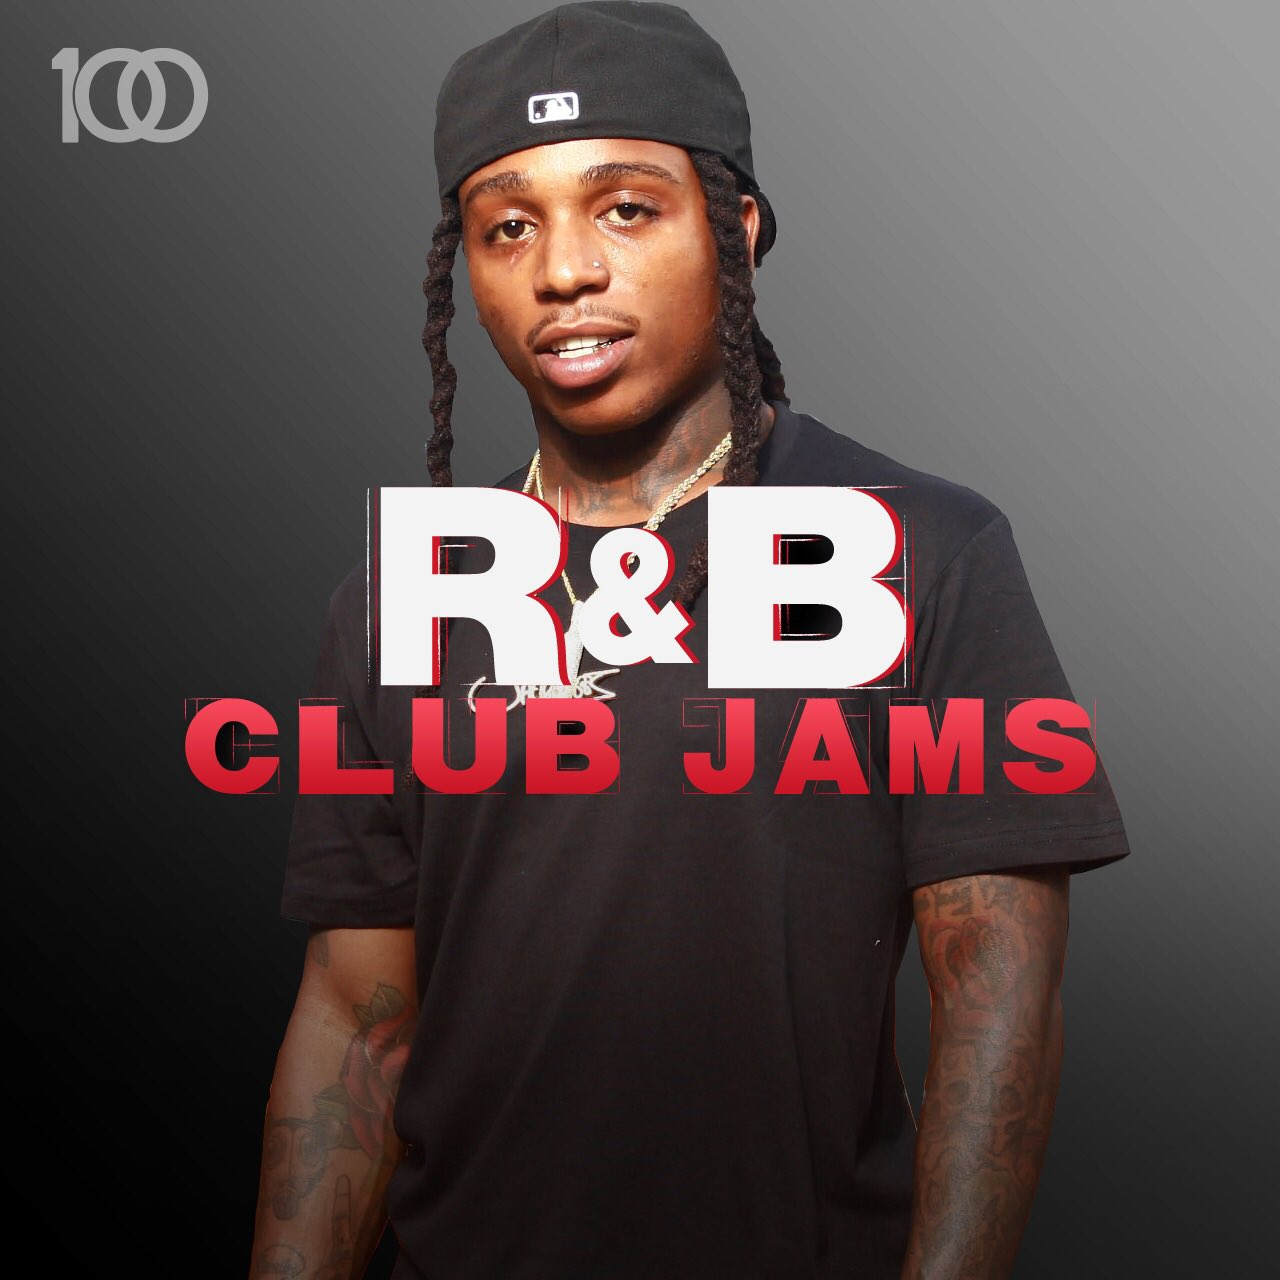 Big up @hundredkeepit for making me the face of R&B Club Jams. Listen to my new single Inside now! https://t.co/sxCTBfDyvP